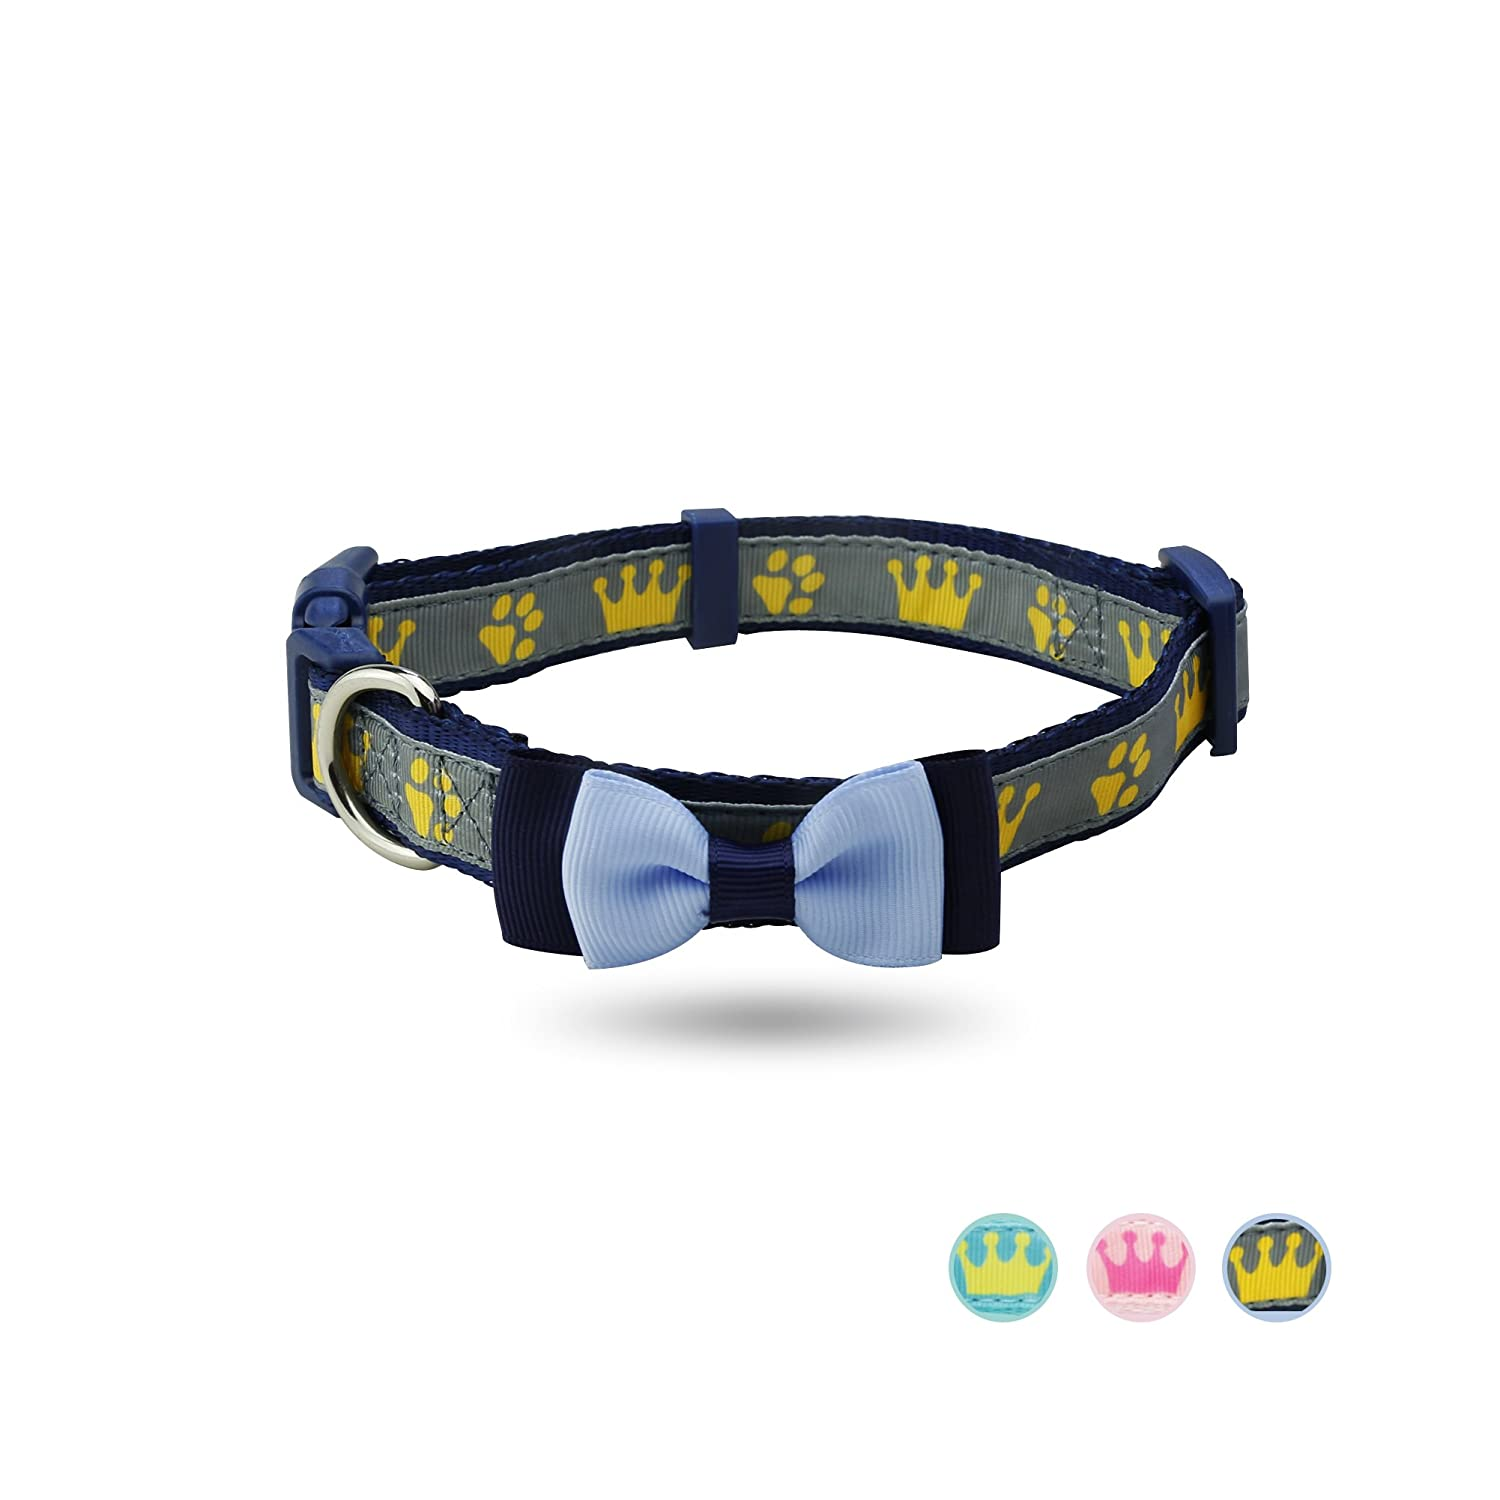 Navy bluee Medium(Neck 12.5\ Navy bluee Medium(Neck 12.5\ YUDOTE Dog Collar with Bow Tie, Adjustable Collars for Small Medium Large Dogs & Puppies, Designer Cute Bowtie Collar, Well Made, Neck 12.5 -19 , Navy bluee